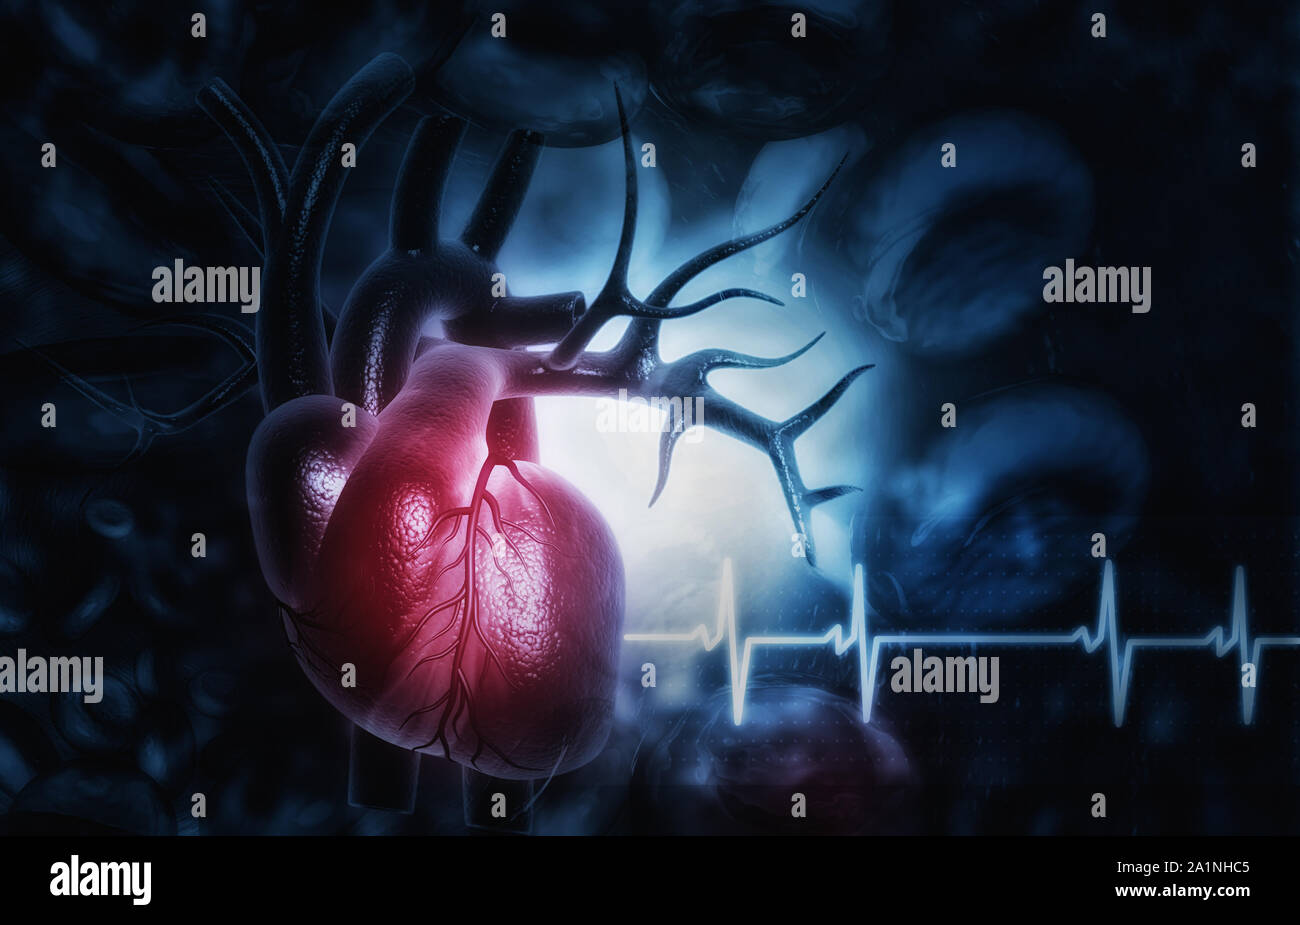 3d Illustration Of Abstract Medical Background With Human